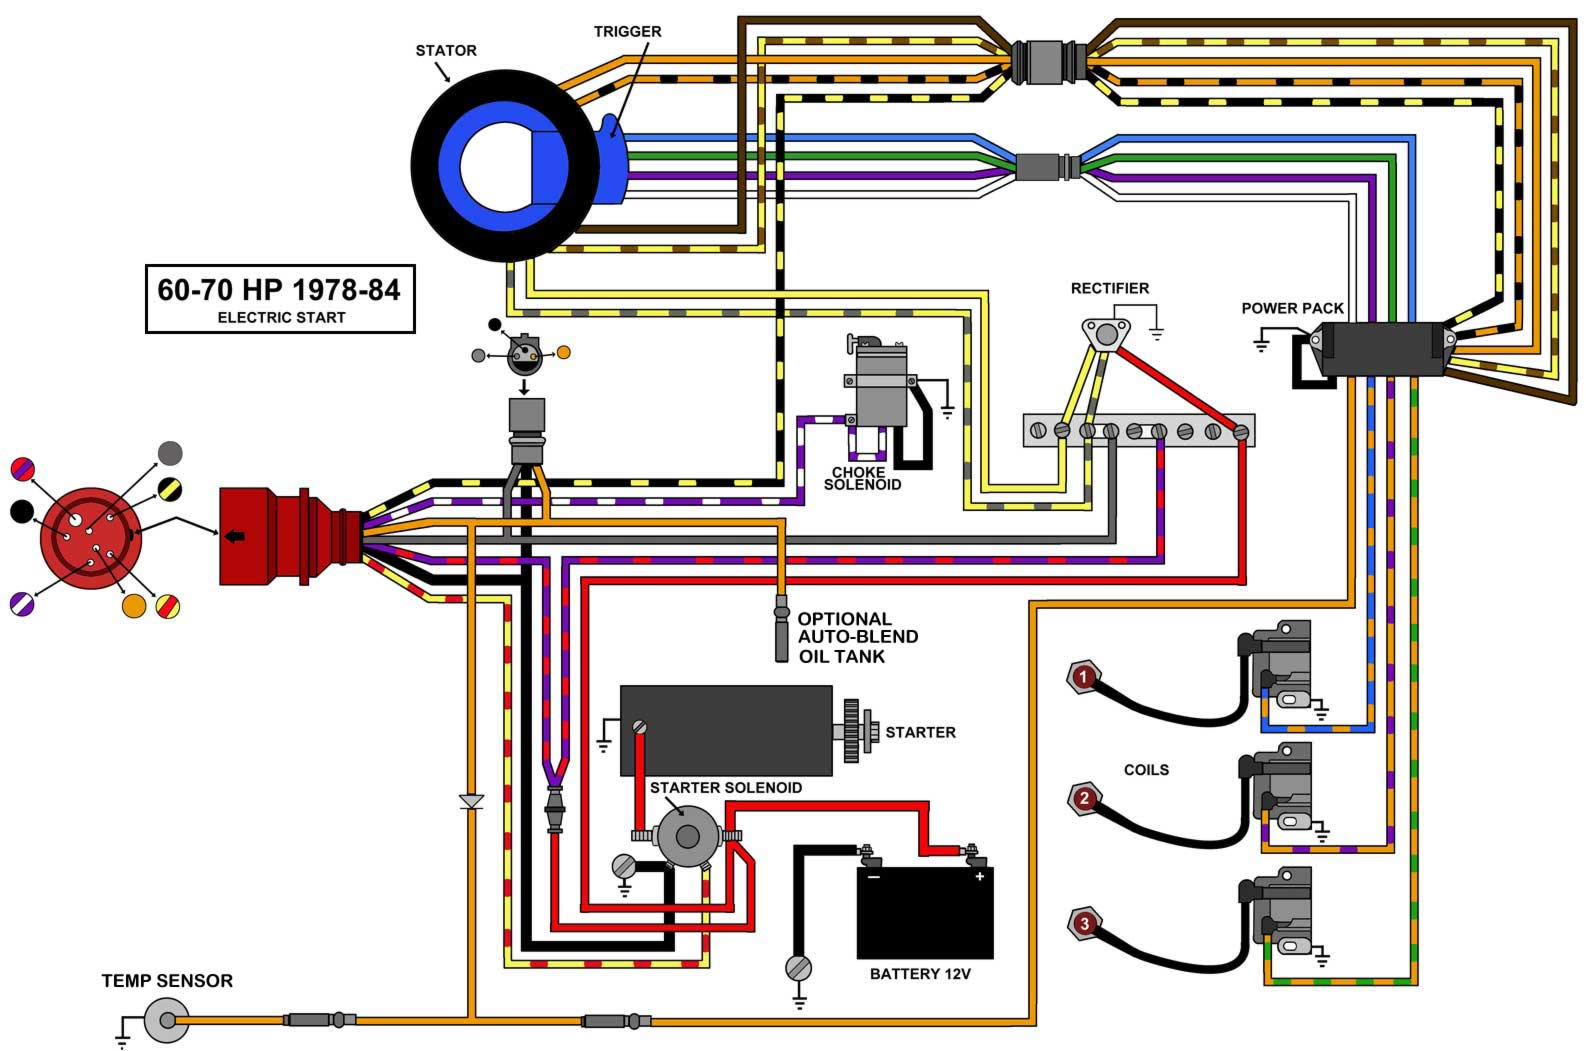 78 84_3 CYL_EL wiring tach from johnson controls page 1 iboats boating forums johnson controls wiring diagram at mifinder.co